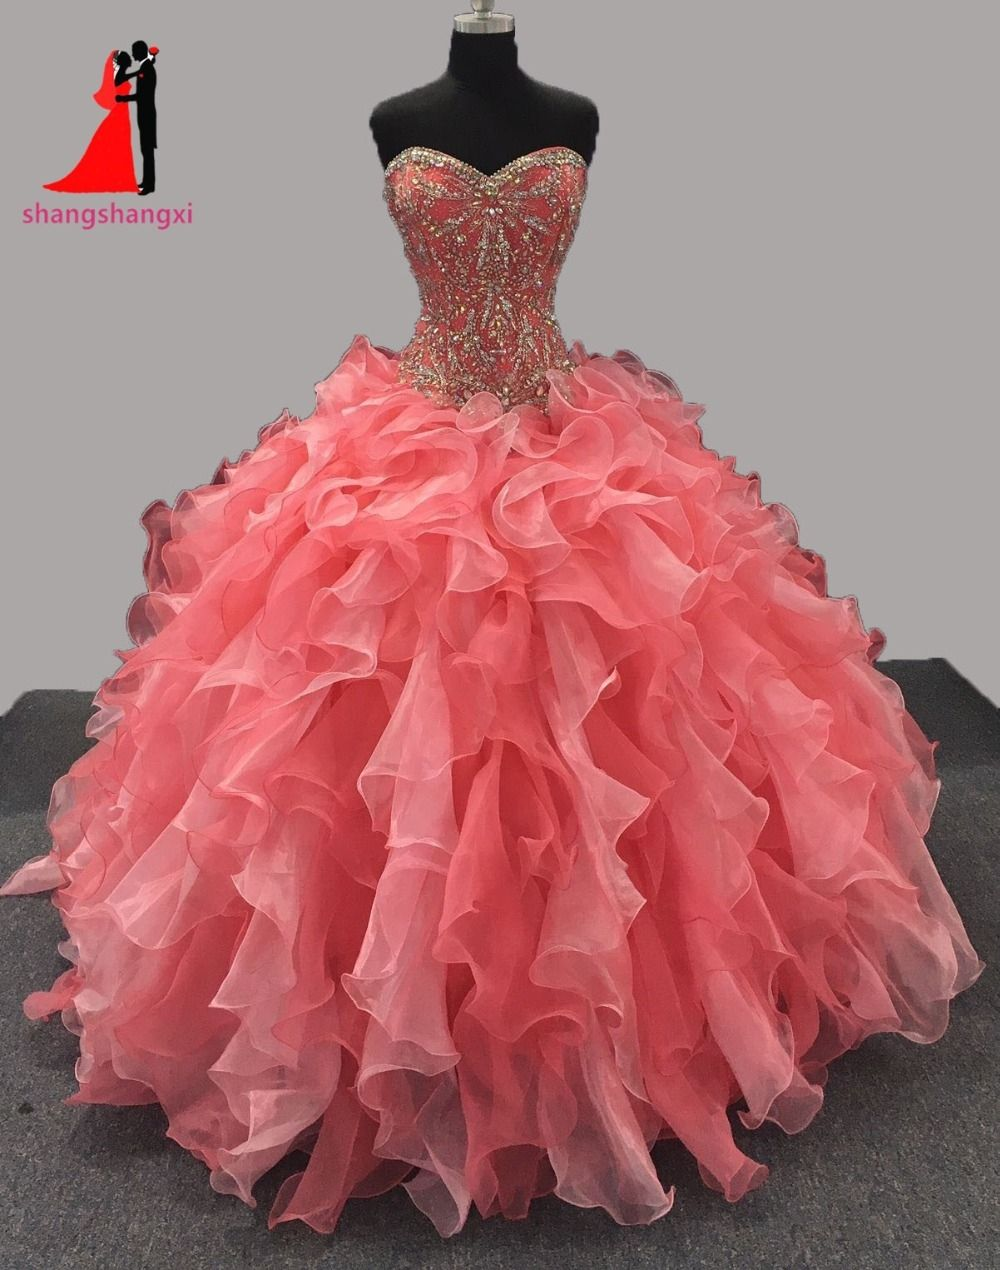 8c119f111aba2 New Coral Quinceanera Dresses Ball Gown Rhinestone Beads Organza Ruffles  Sweet 16 Dresses Long Prom Gown